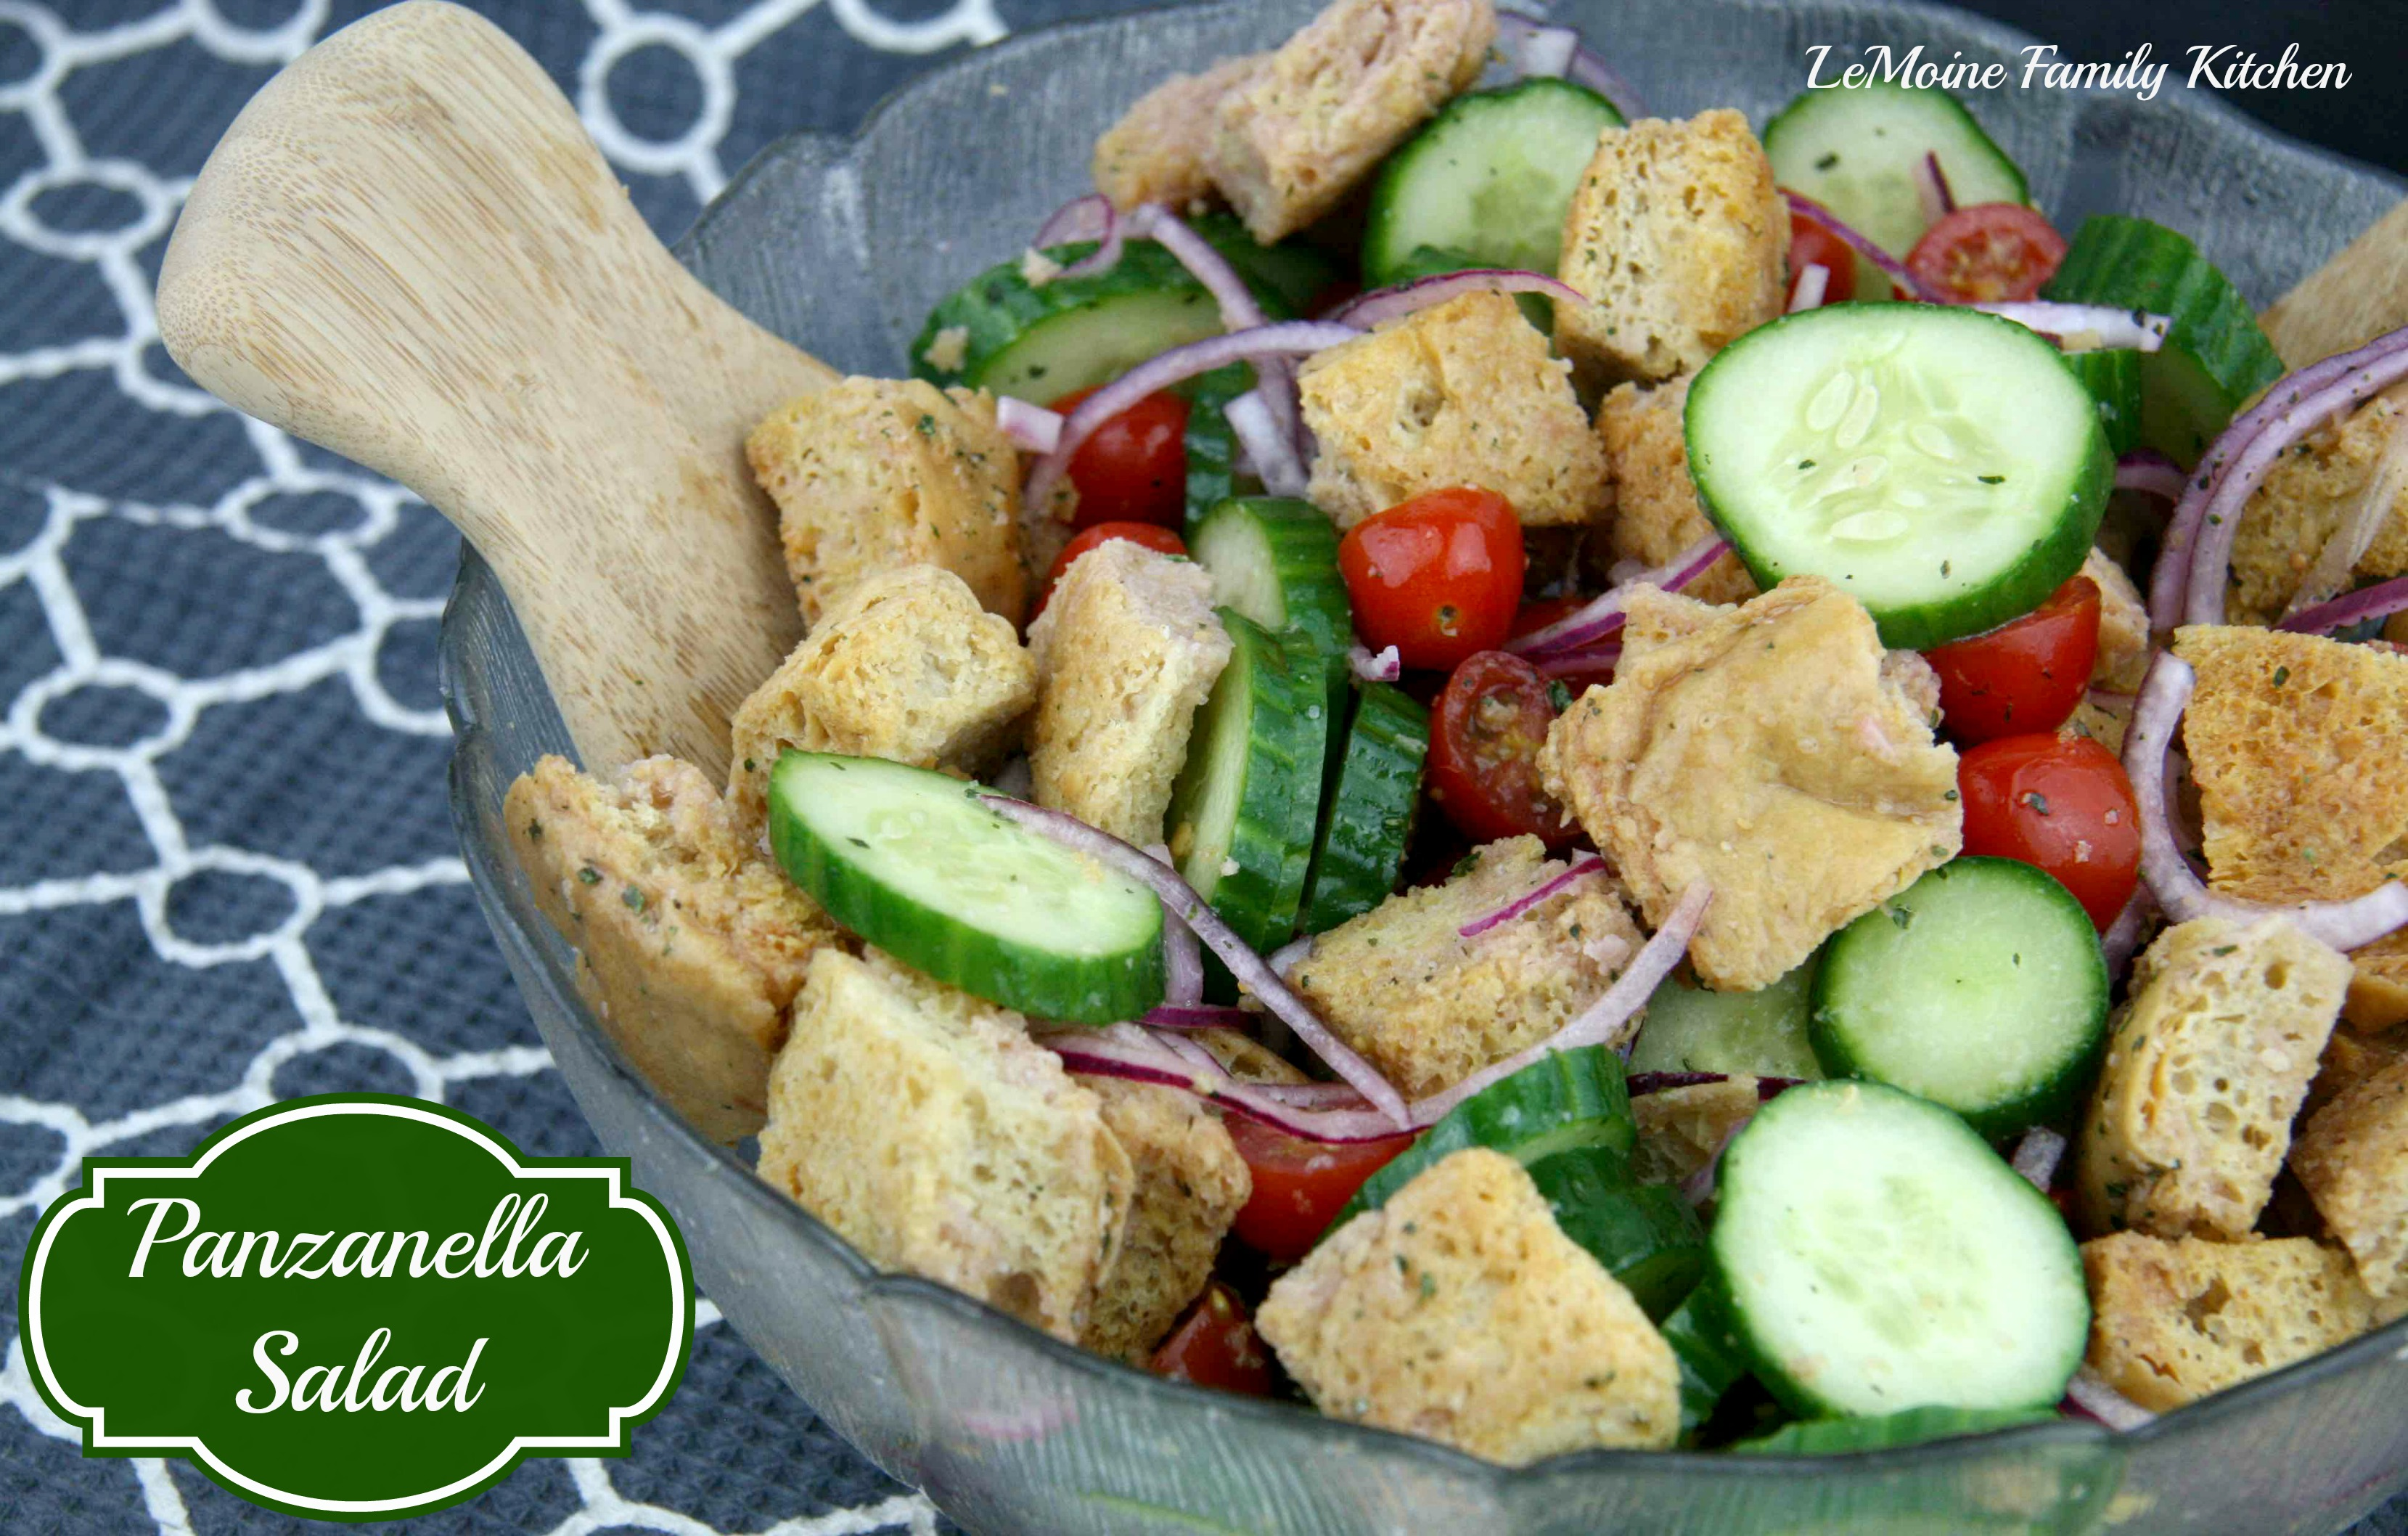 Panzanella Salad | LeMoine Family Kitchen #healthy #bread #salad #vegetable #sidedish